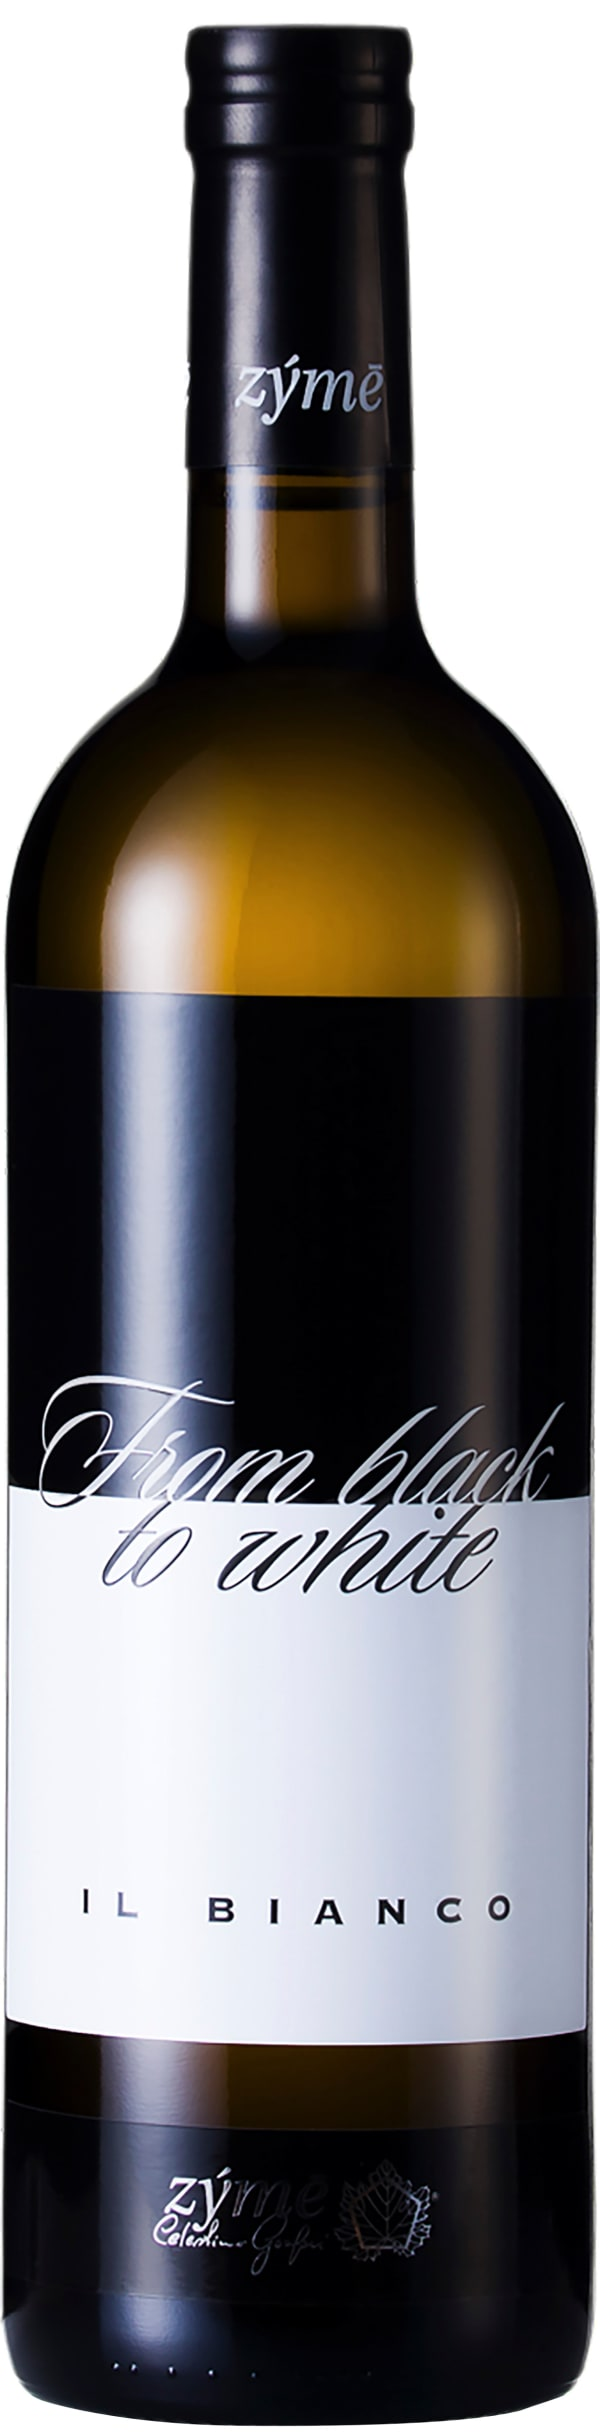 Zyme Il Bianco From Black to White 2016